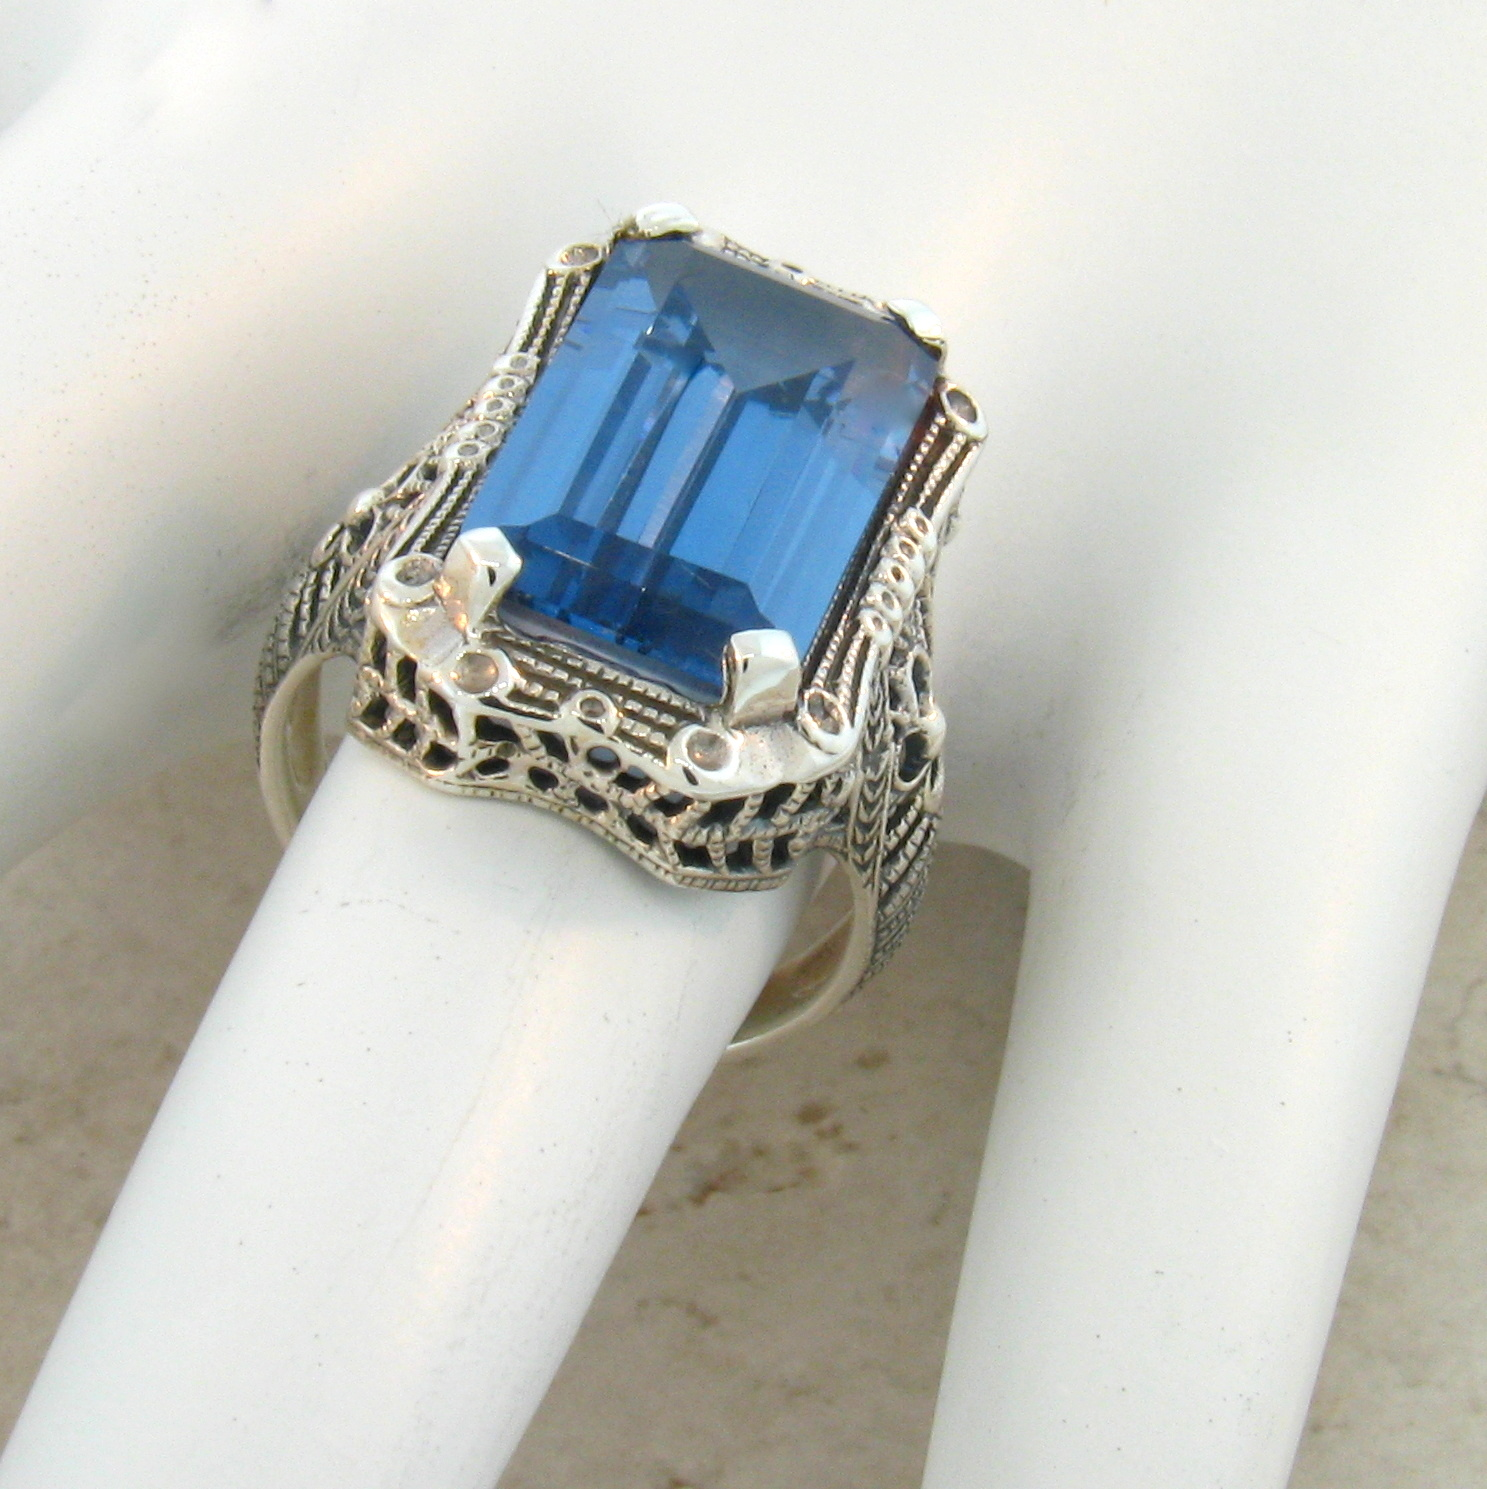 SIM SKY BLUE TOPAZ ANTIQUE STYLE .925 STERLING SILVER RING SIZE 6 4.5 CT #372